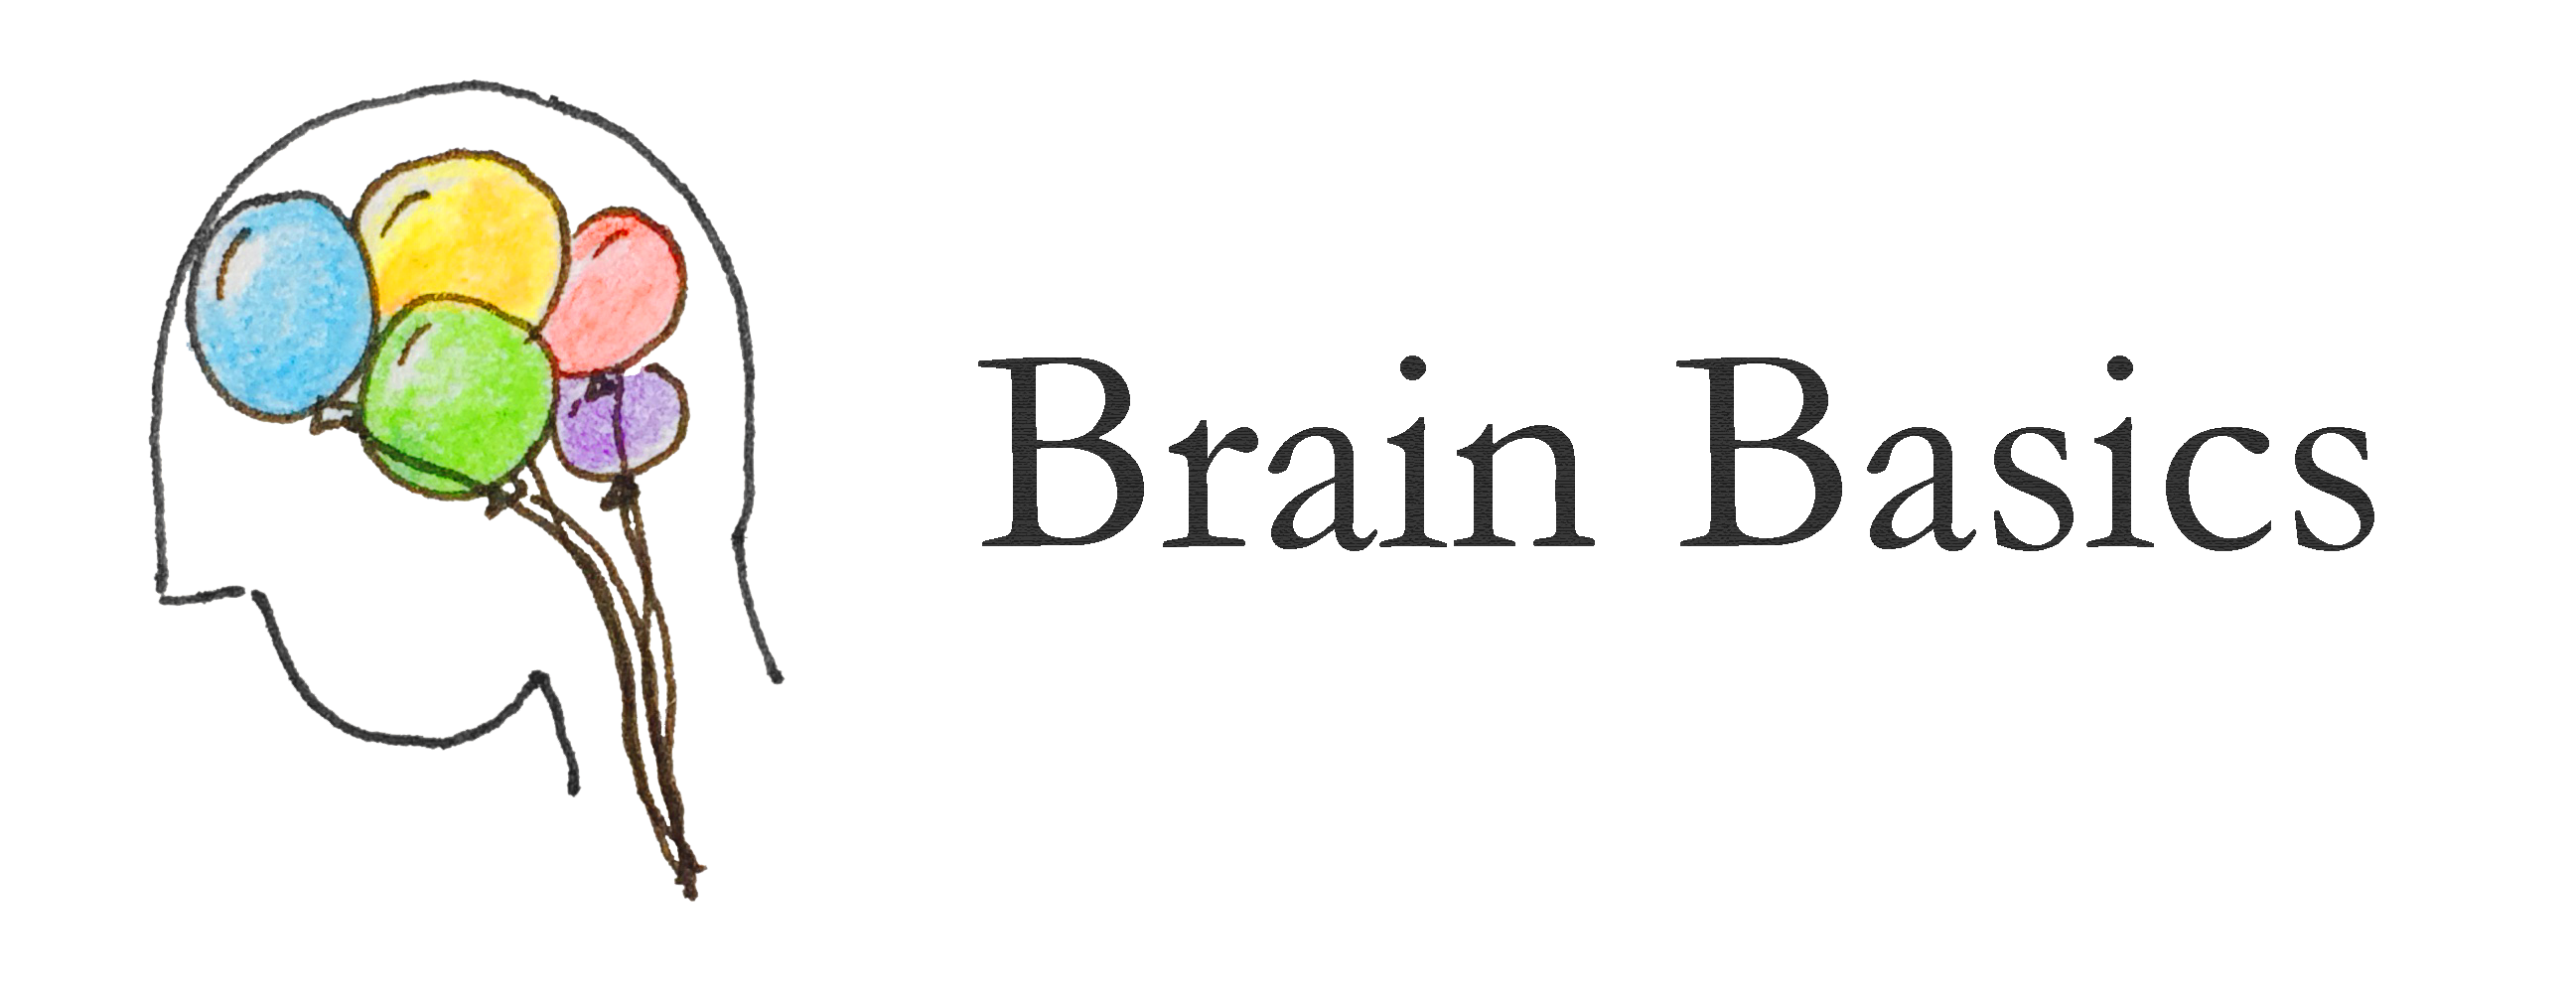 Harvard Brain Basics